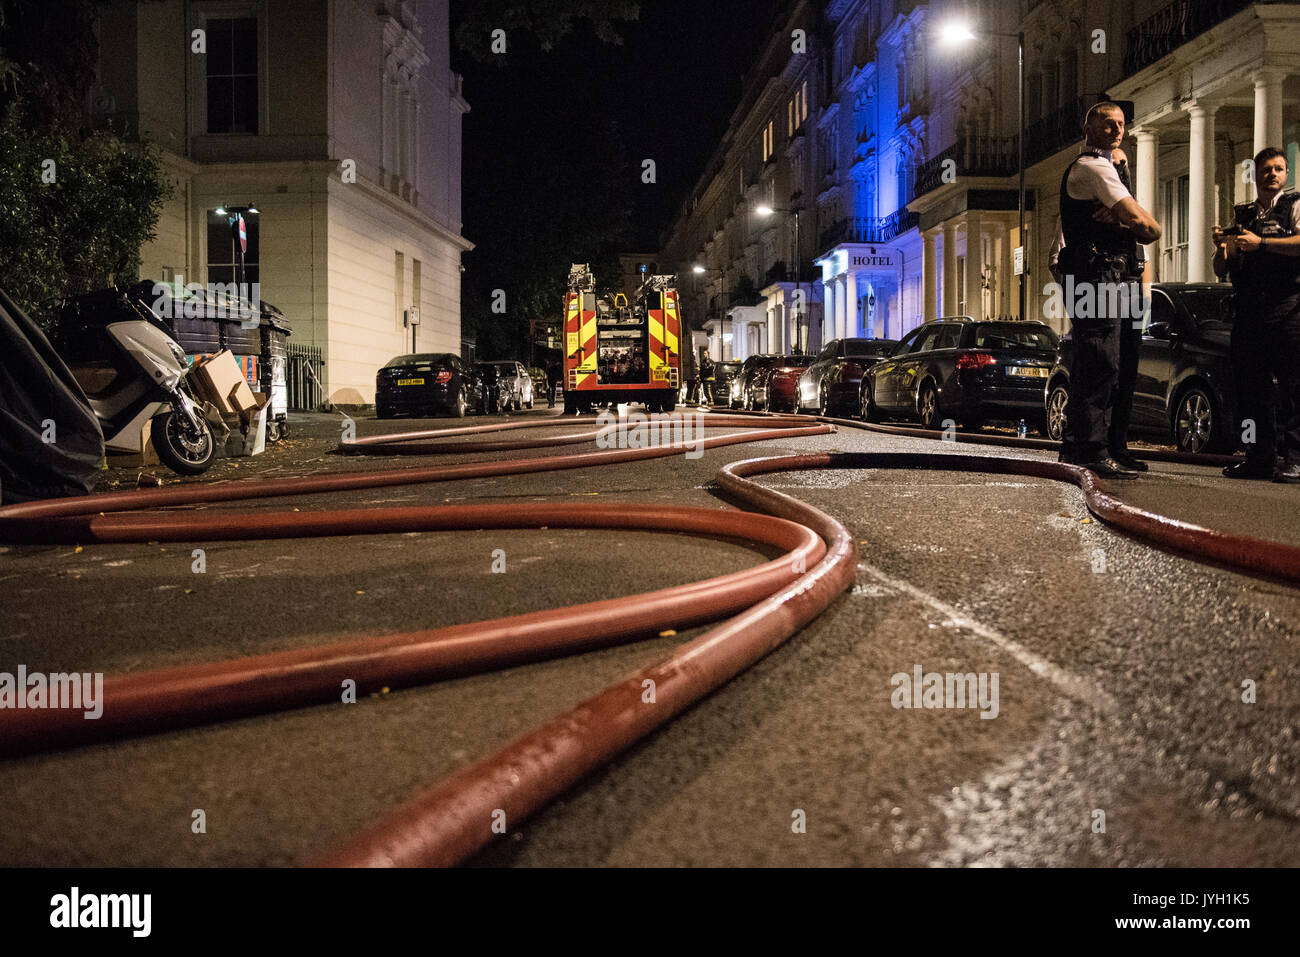 London, UK. 19th Aug, 2017. Eight fire engines and 58 firefighters were called to a flat fire on Kensington Gardens Square in Bayswater. The fire gutted two flats - one on the third floor and one on the fourth floor of the converted five storey mid-terraced town house. Credit: Peter Manning/Alamy Live News - Stock Image